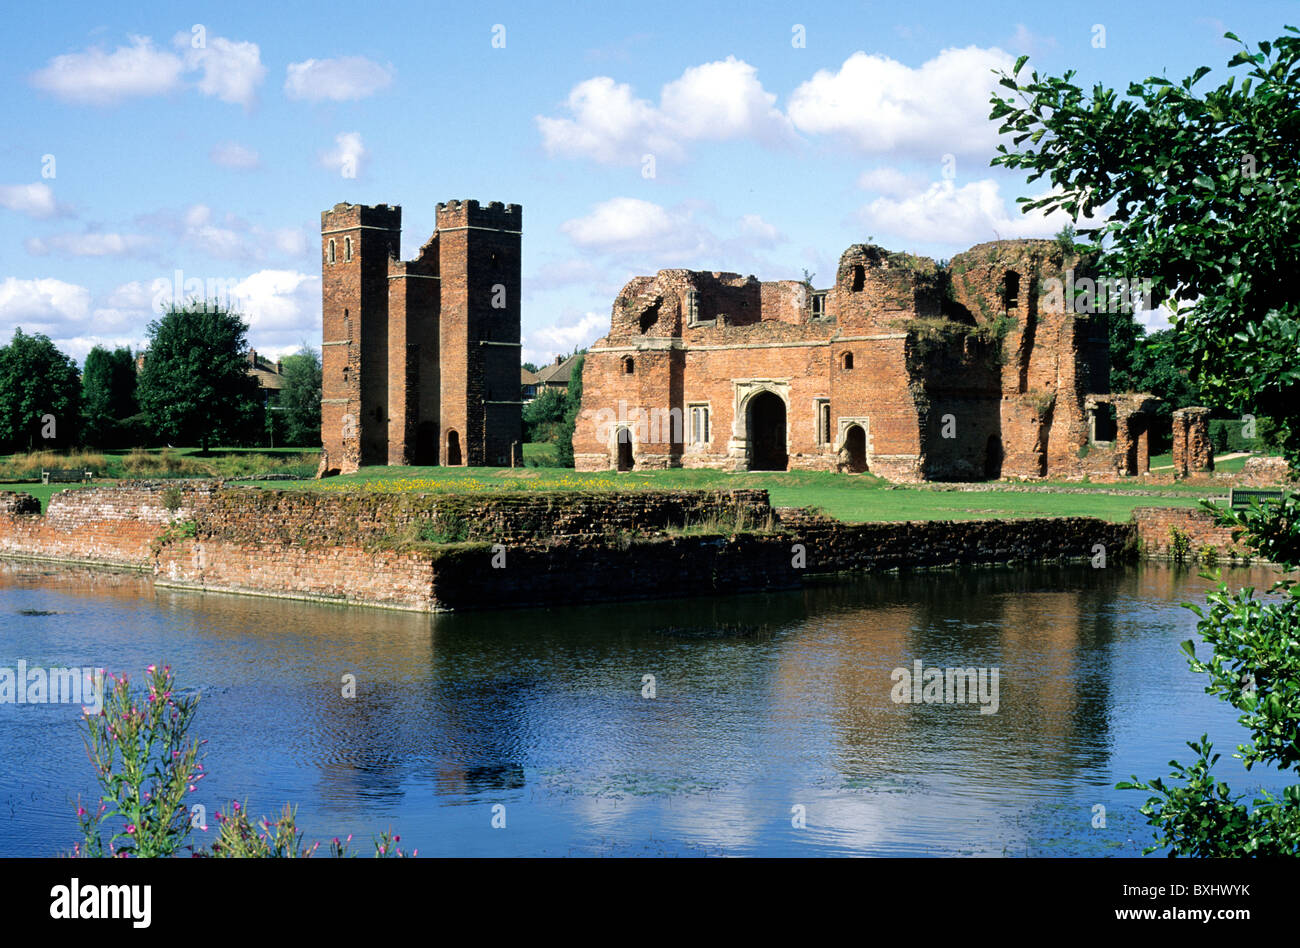 Kirby Muxloe Castle and Moat, Leicestershire England UK English medieval castles moats keep keeps ruin ruins ruined - Stock Image